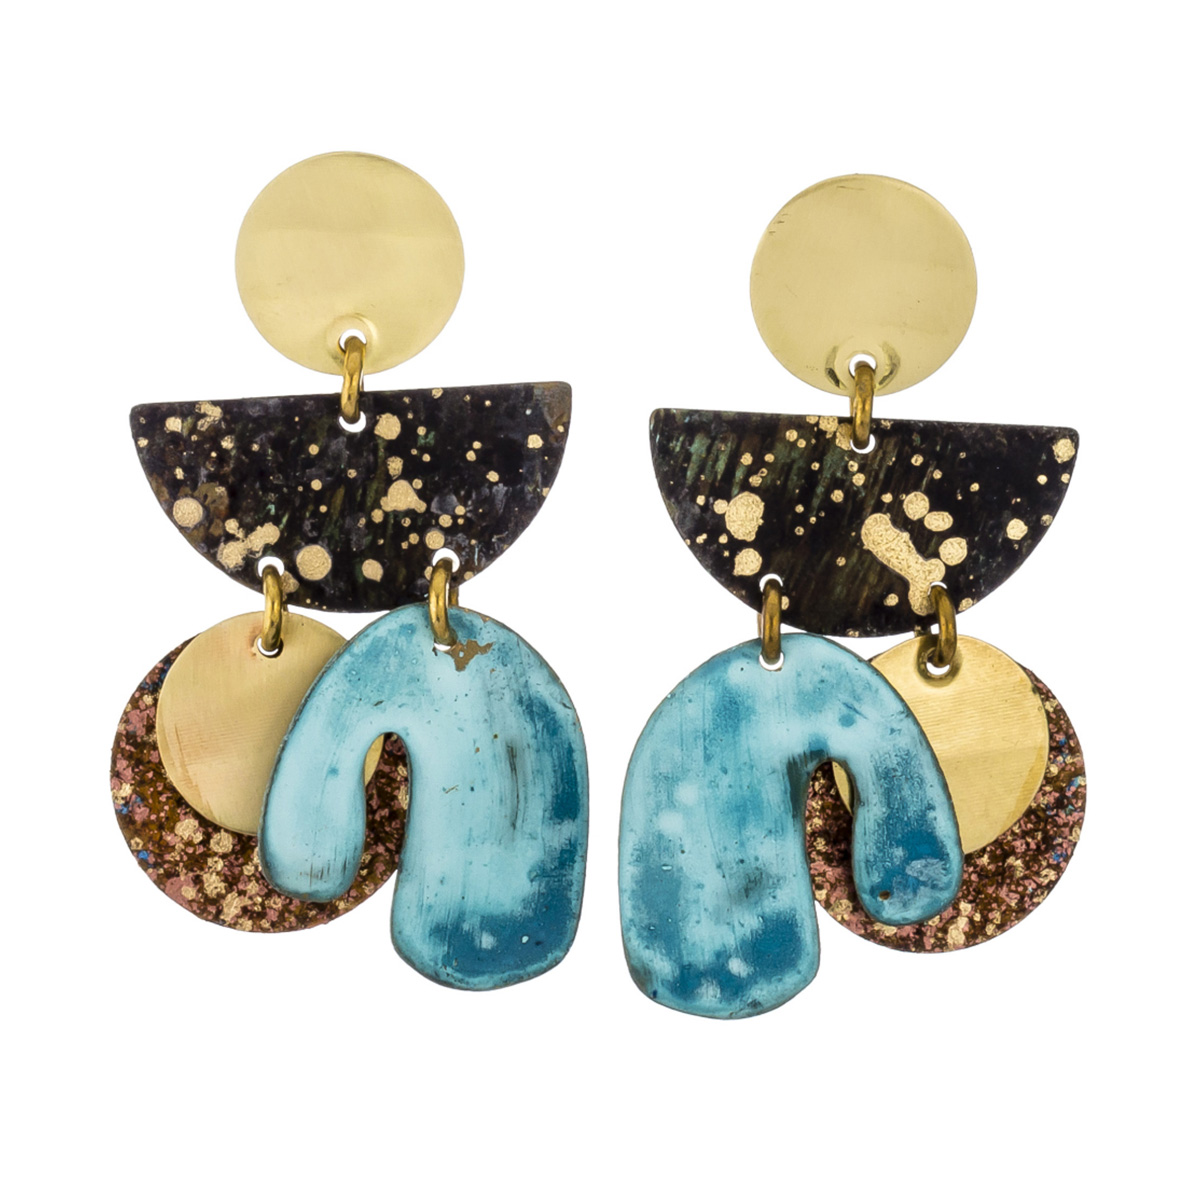 Amazonia speck mobile stud earrings by Sibilia